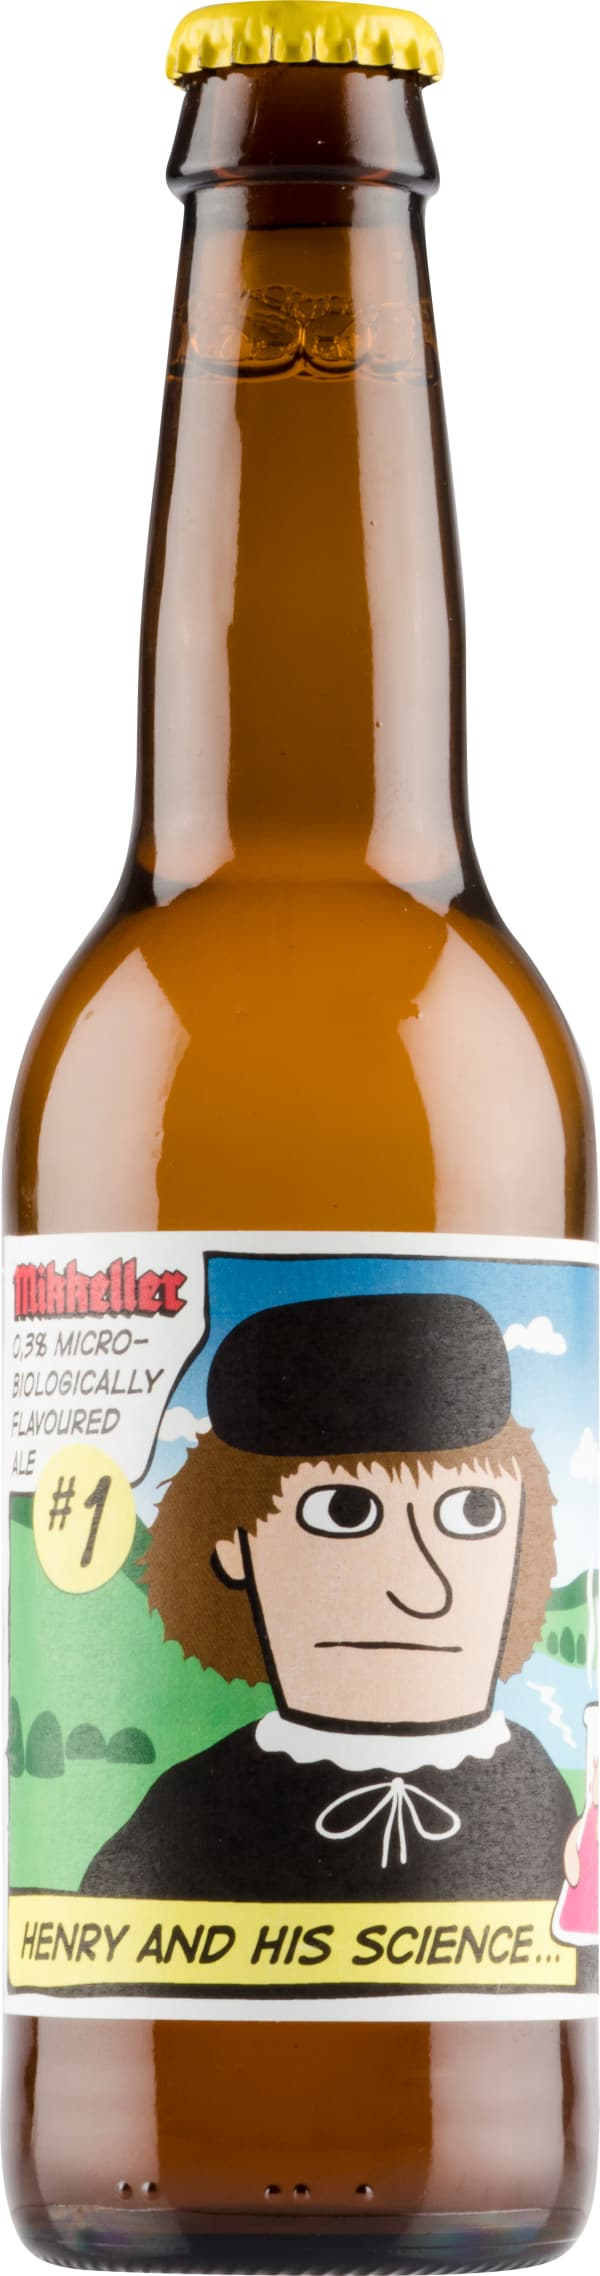 mikkeller-henry-and-his-science